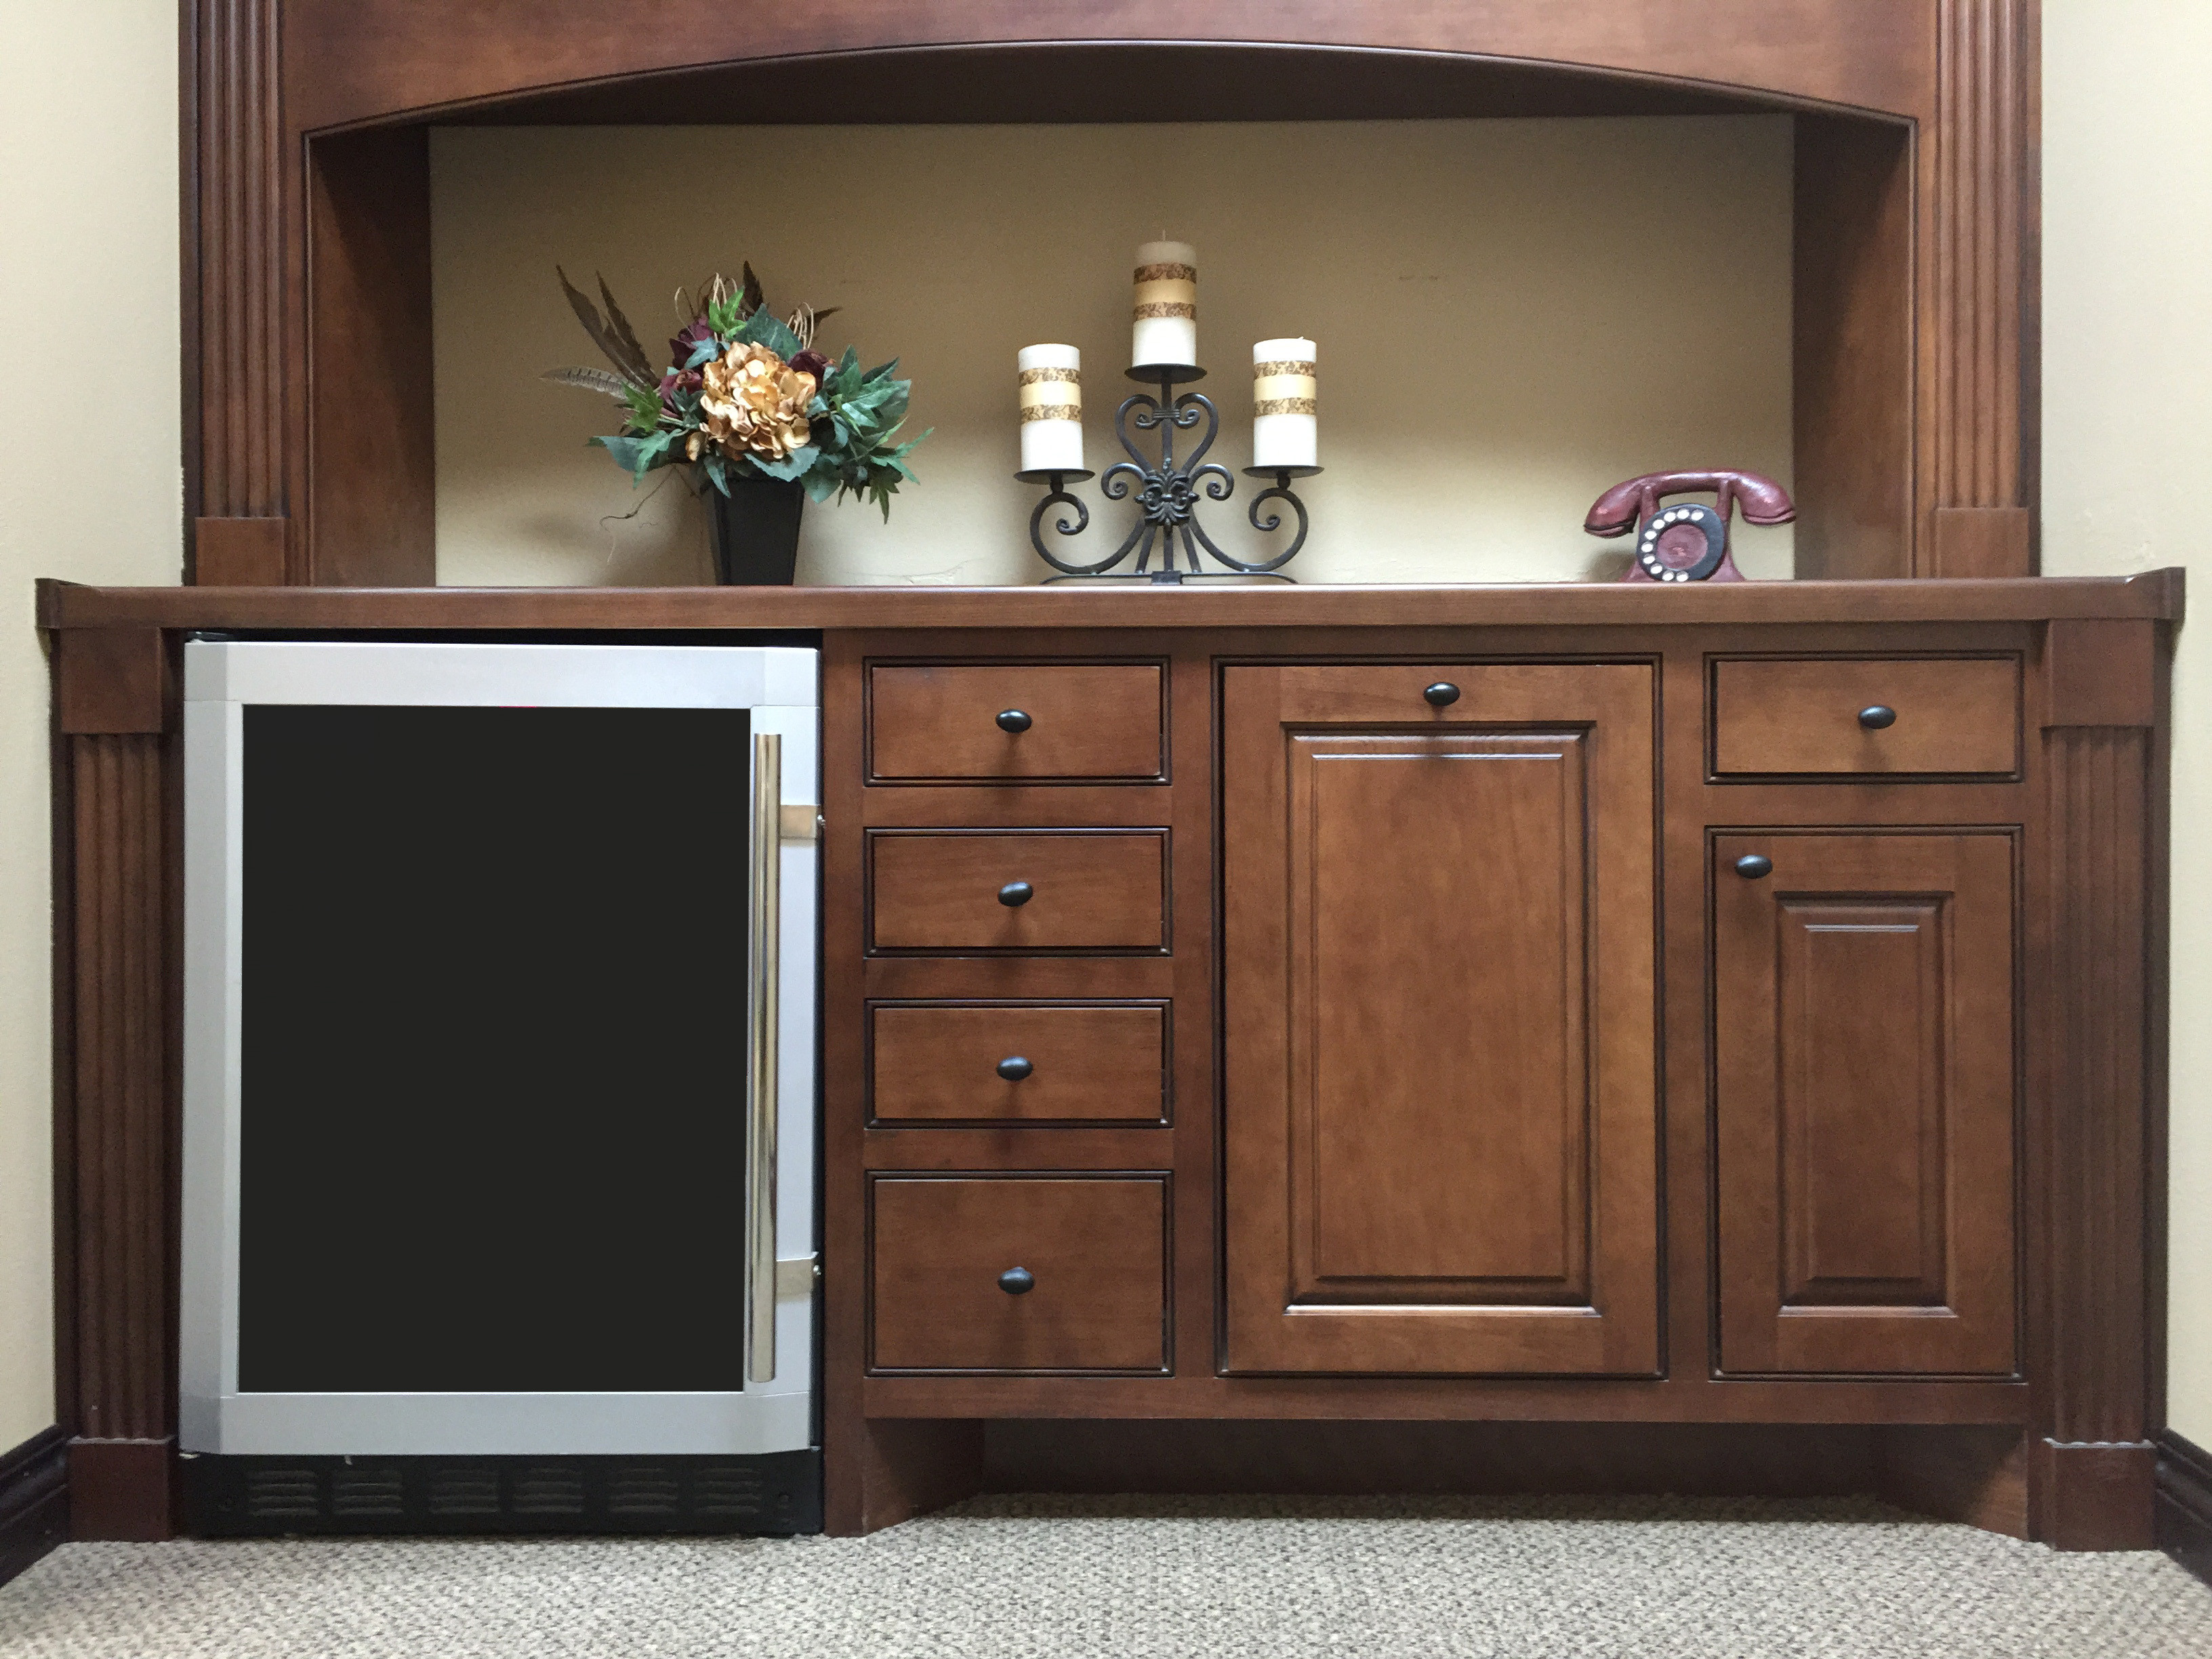 Best ideas about Kitchen Cabinets Doors . Save or Pin Cabinet Construction Options Faceframe vs European Frameless Now.